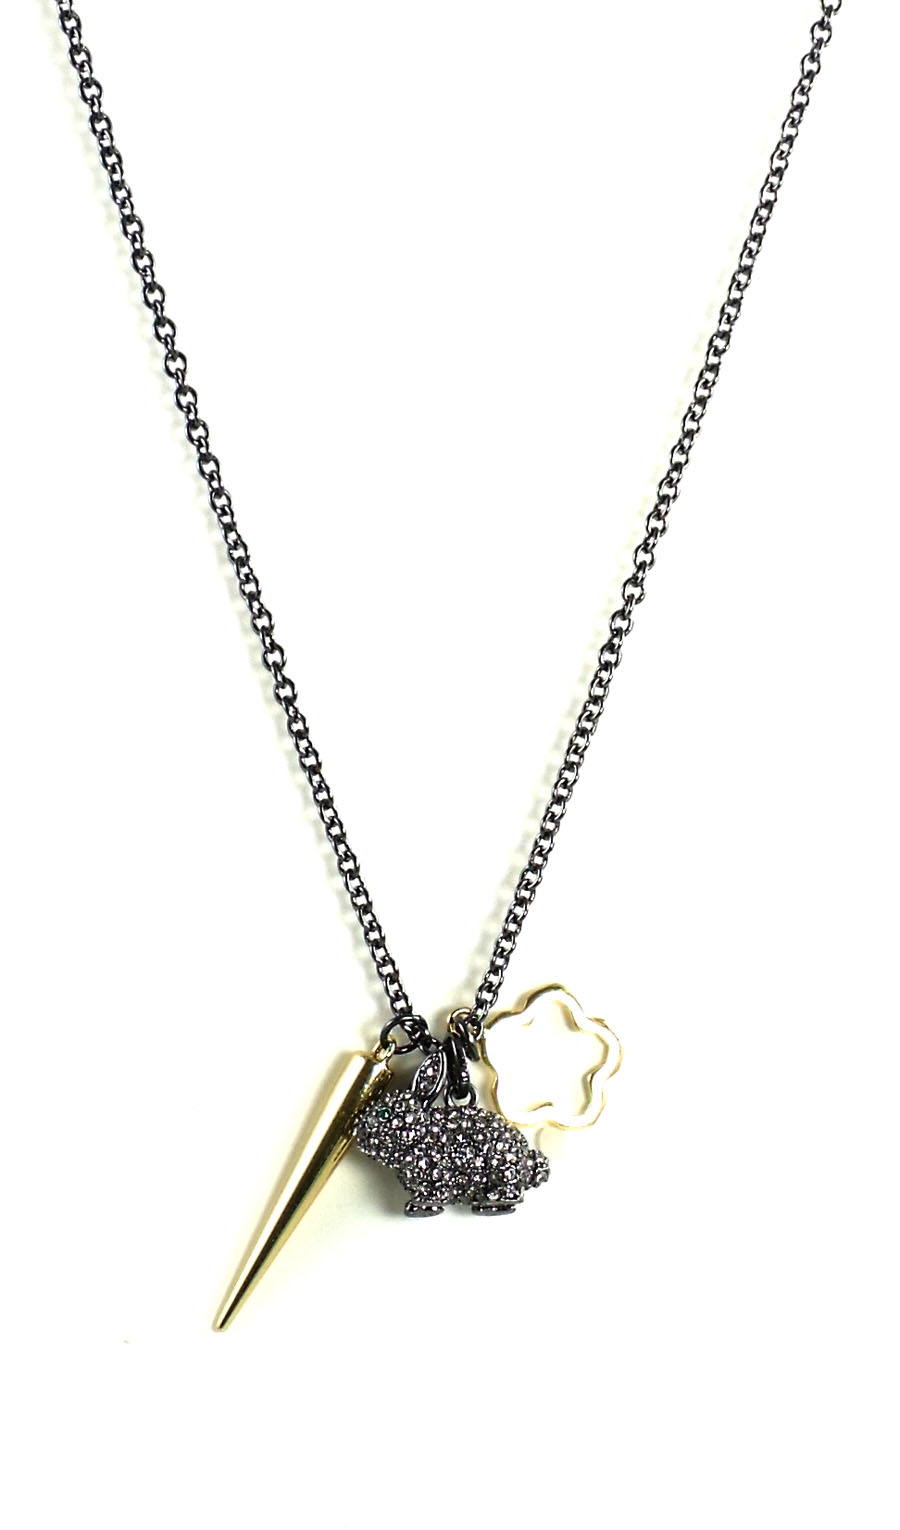 Juicy Couture Jewelry Black Silver Pave Bunny Necklace NWT